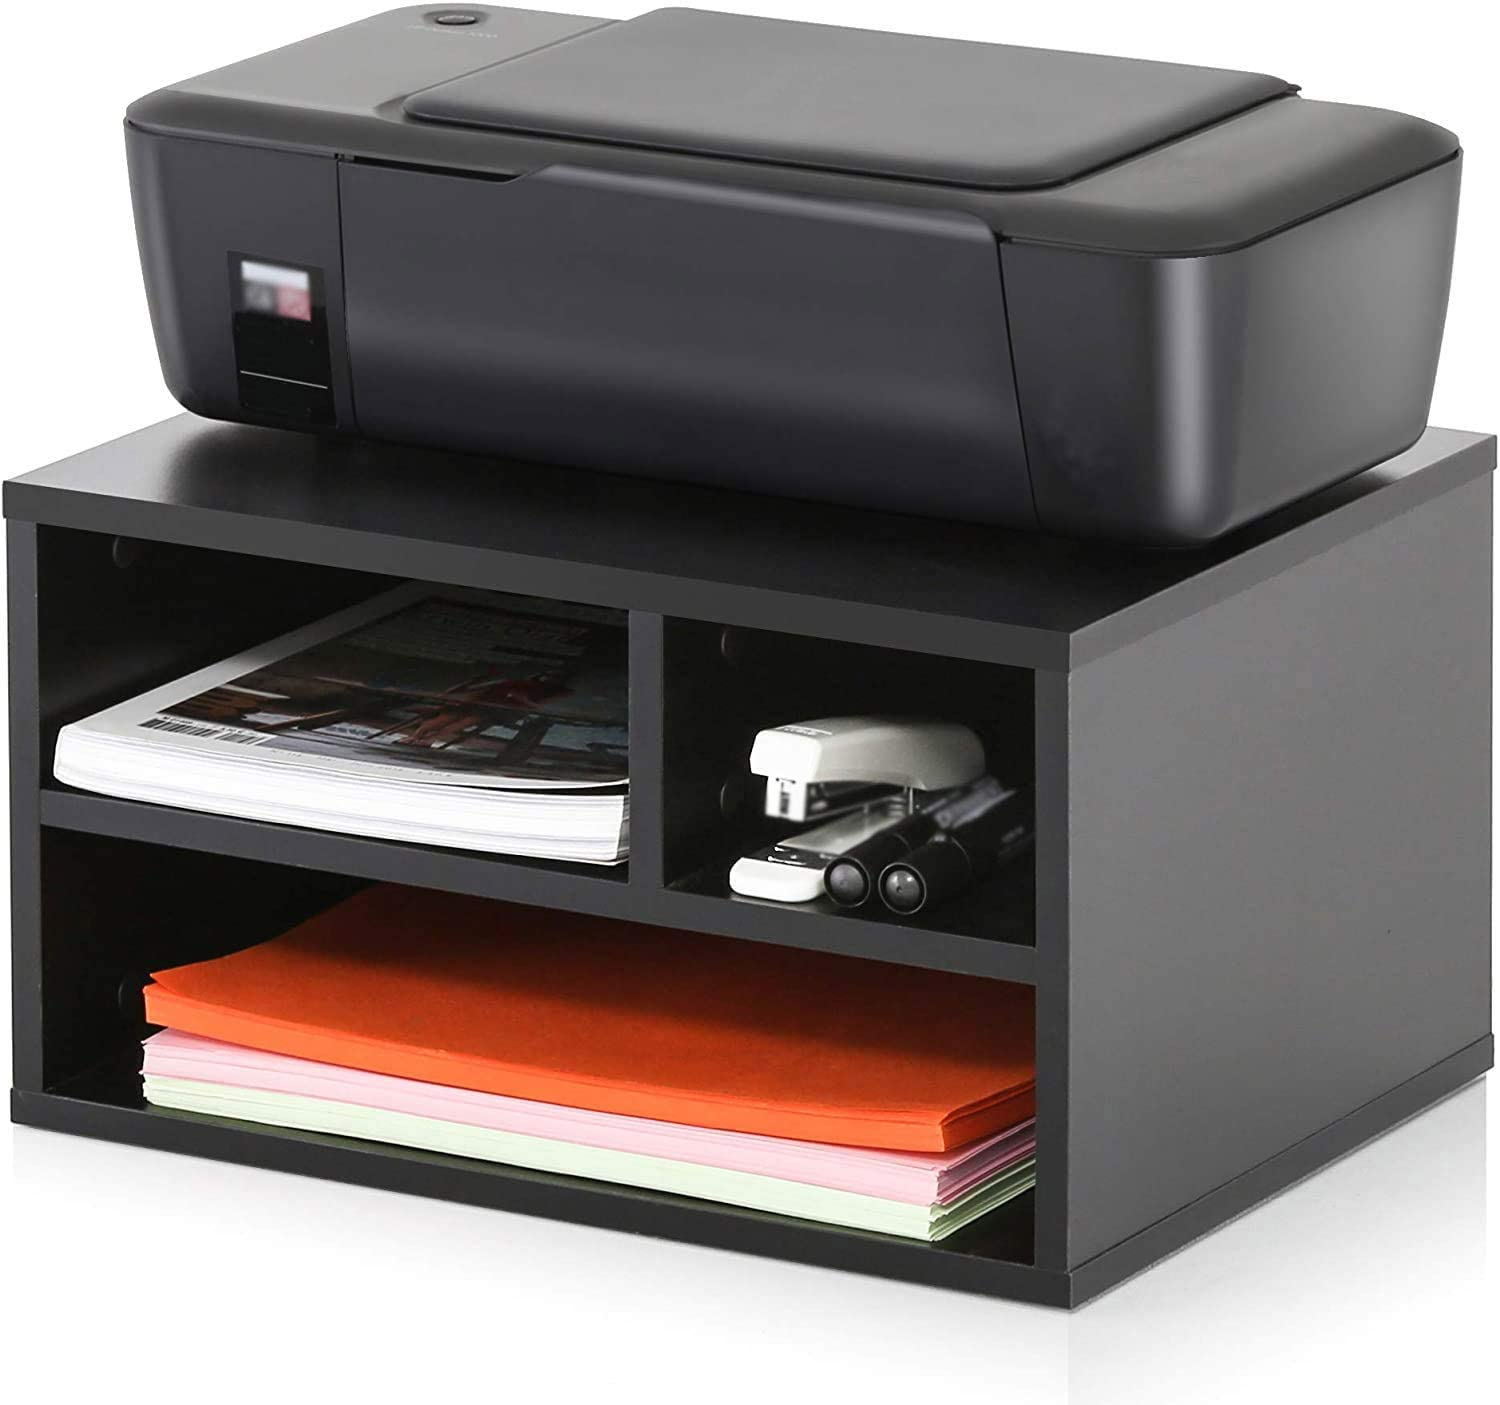 SEWMANCY Wood Printer Stand with Storage, Workspace Desktop Organizer for Home, Office, Black